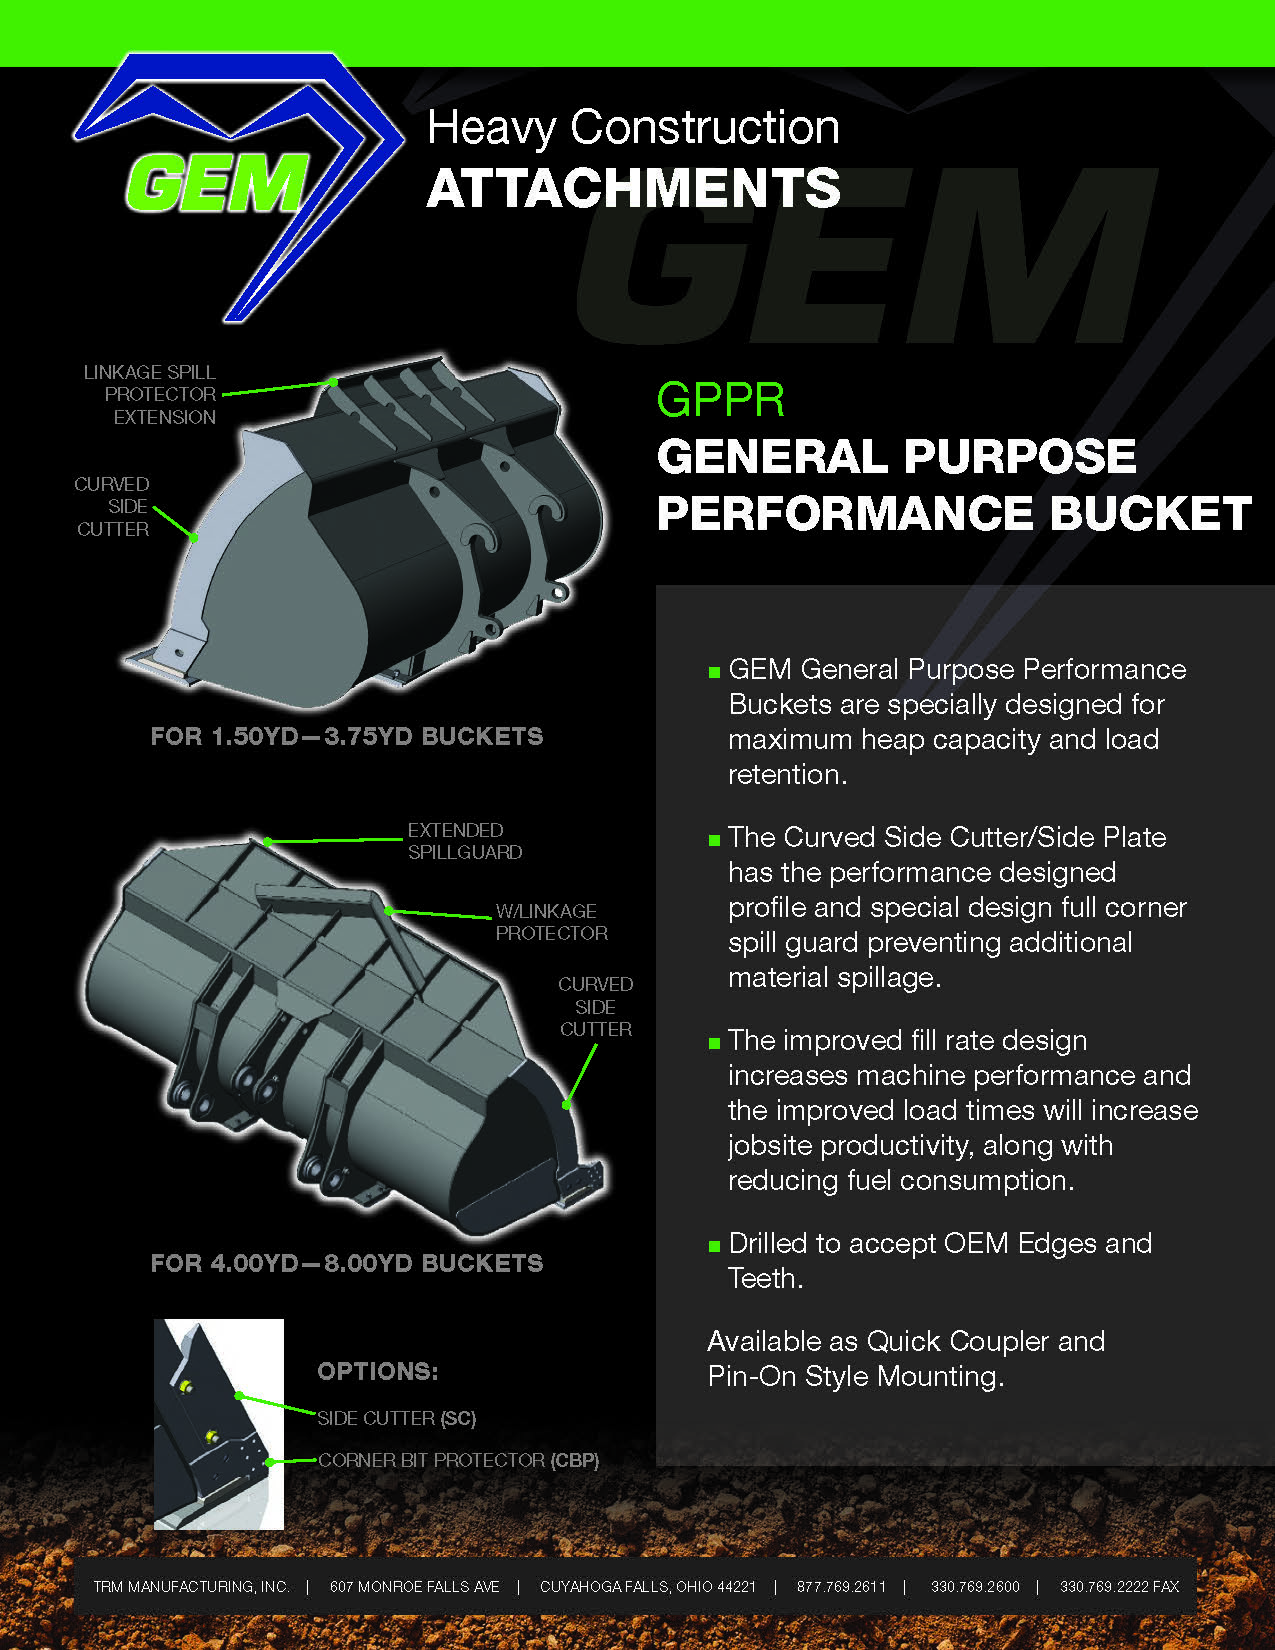 General Purpose Performance Bucket | Gem Heavy Construction Attachments